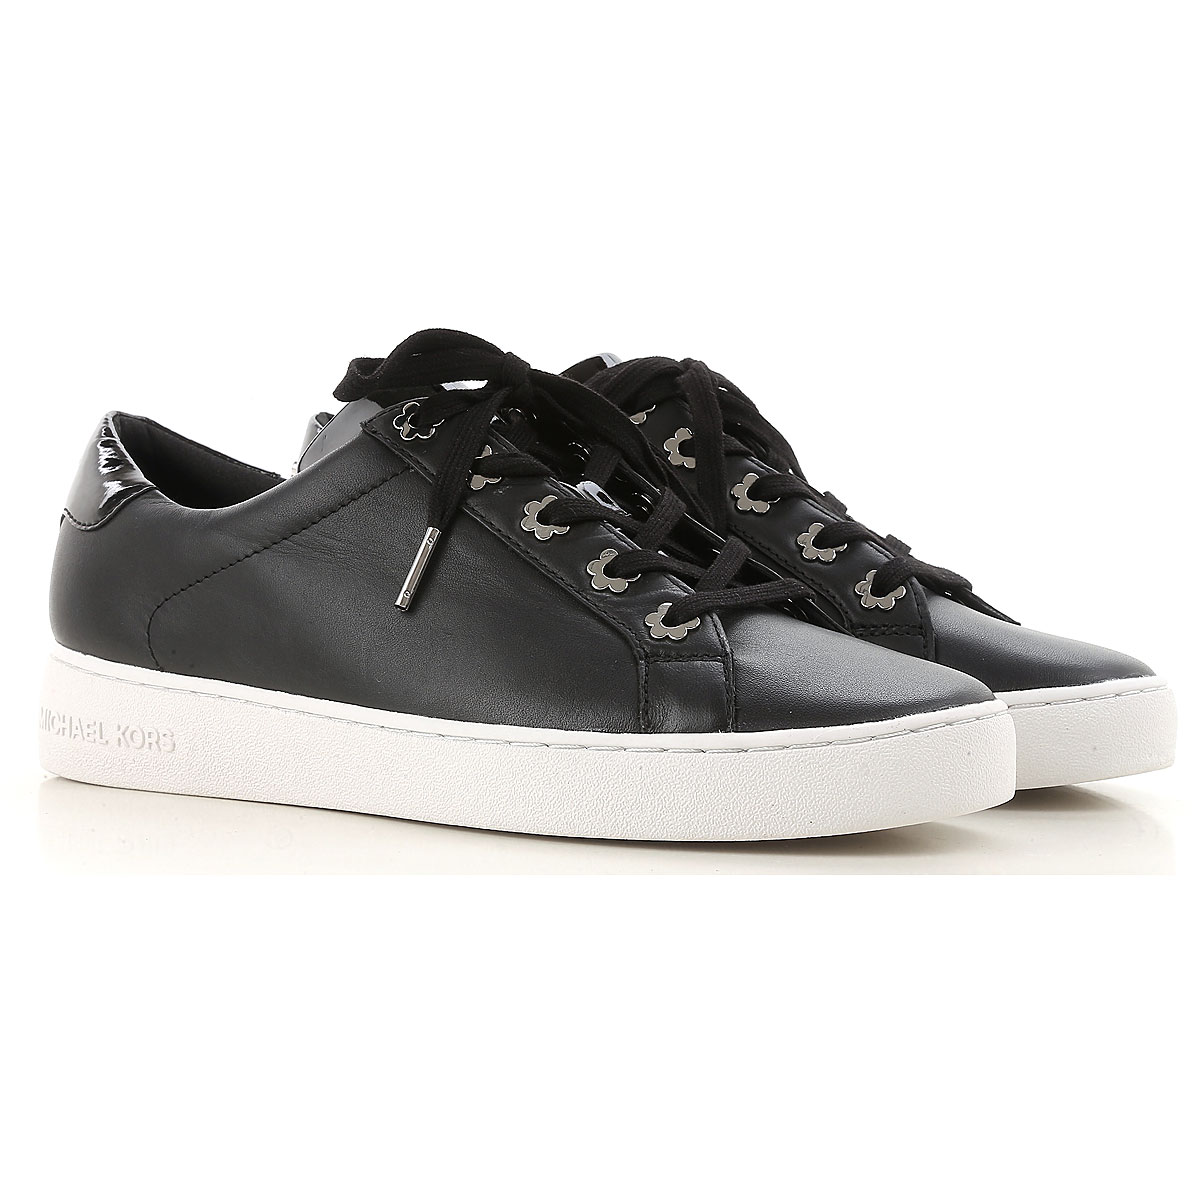 Michael Kors Sneakers for Women On Sale, Black, Leather, 2017, 3.5 4.5 5.5 7.5